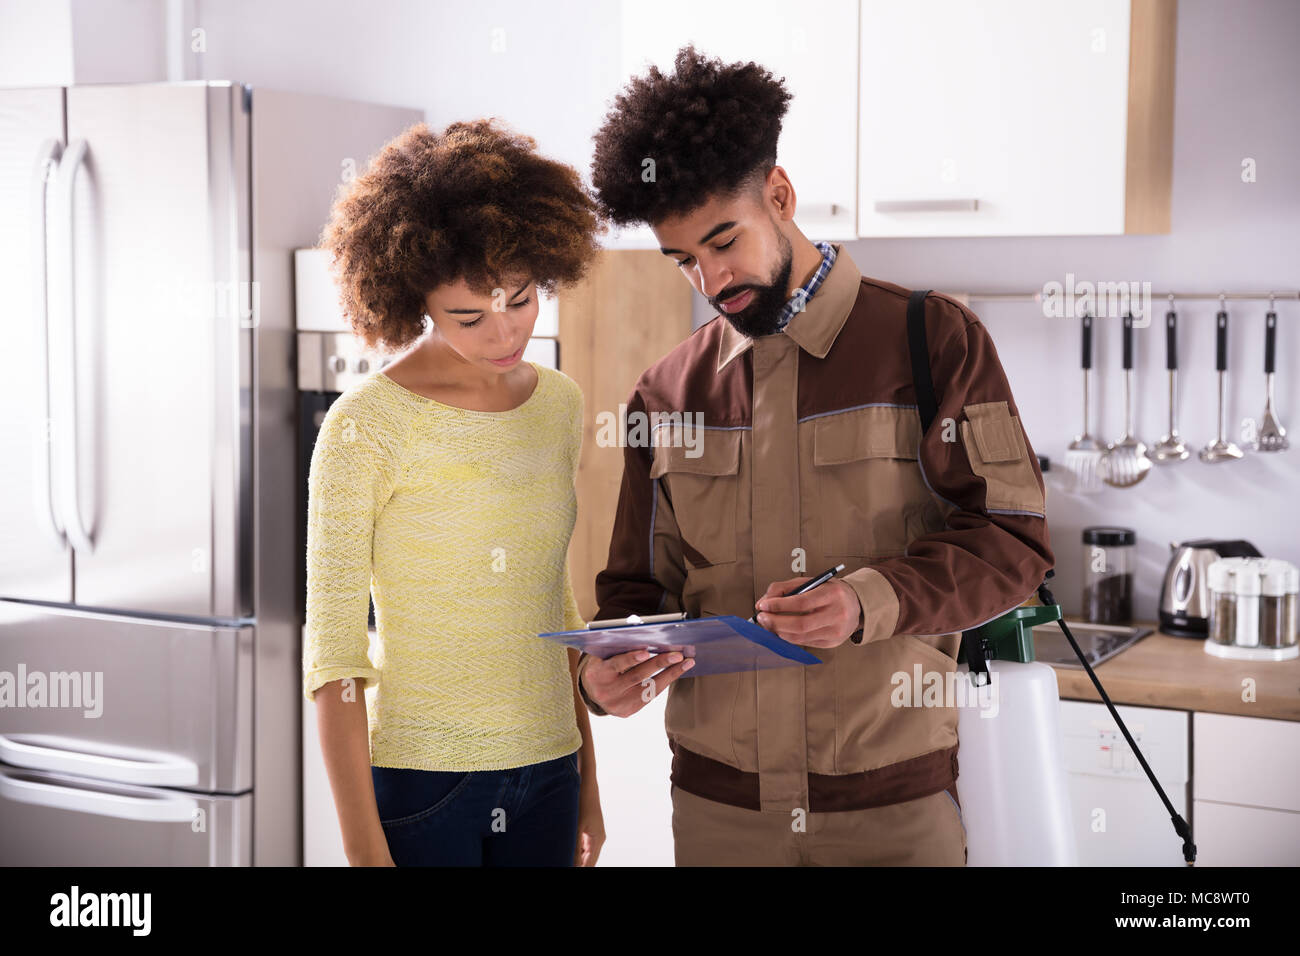 Young Male Pest Control Worker Showing Invoice To Woman In Domestic Kitchen - Stock Image